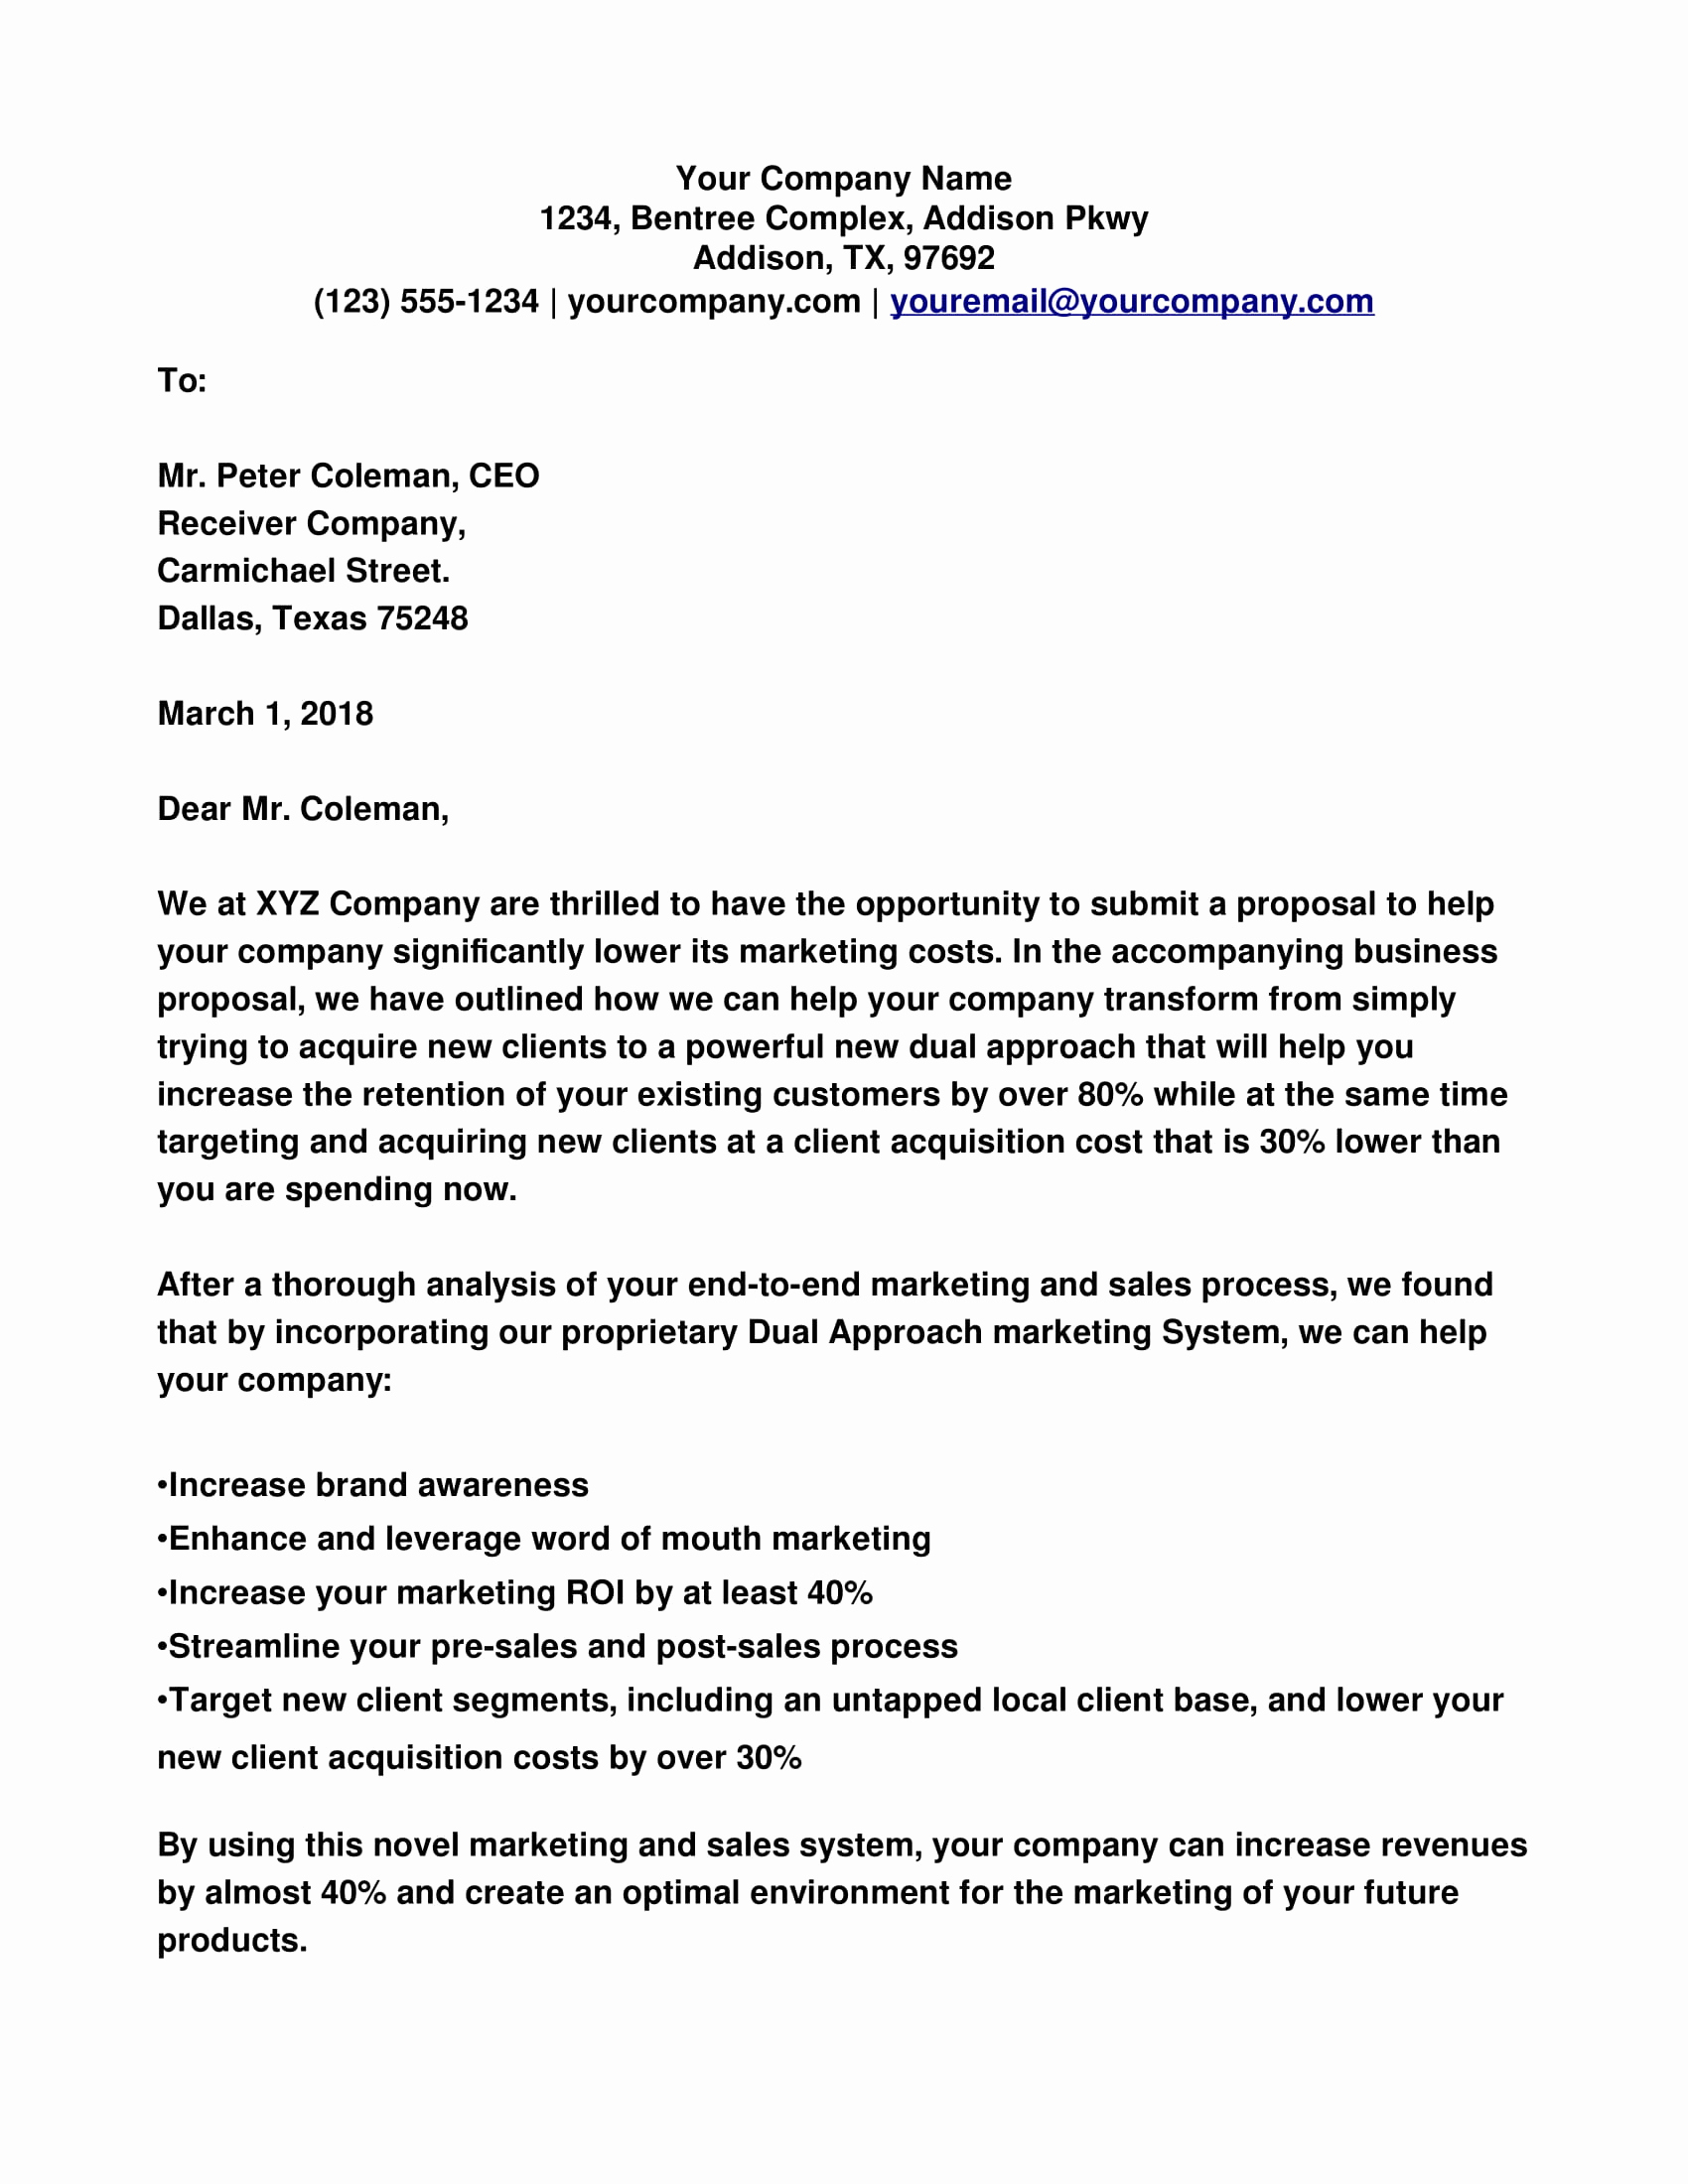 Cover Letter for Proposal Lovely Business Proposal Cover Letter Examples Pdf